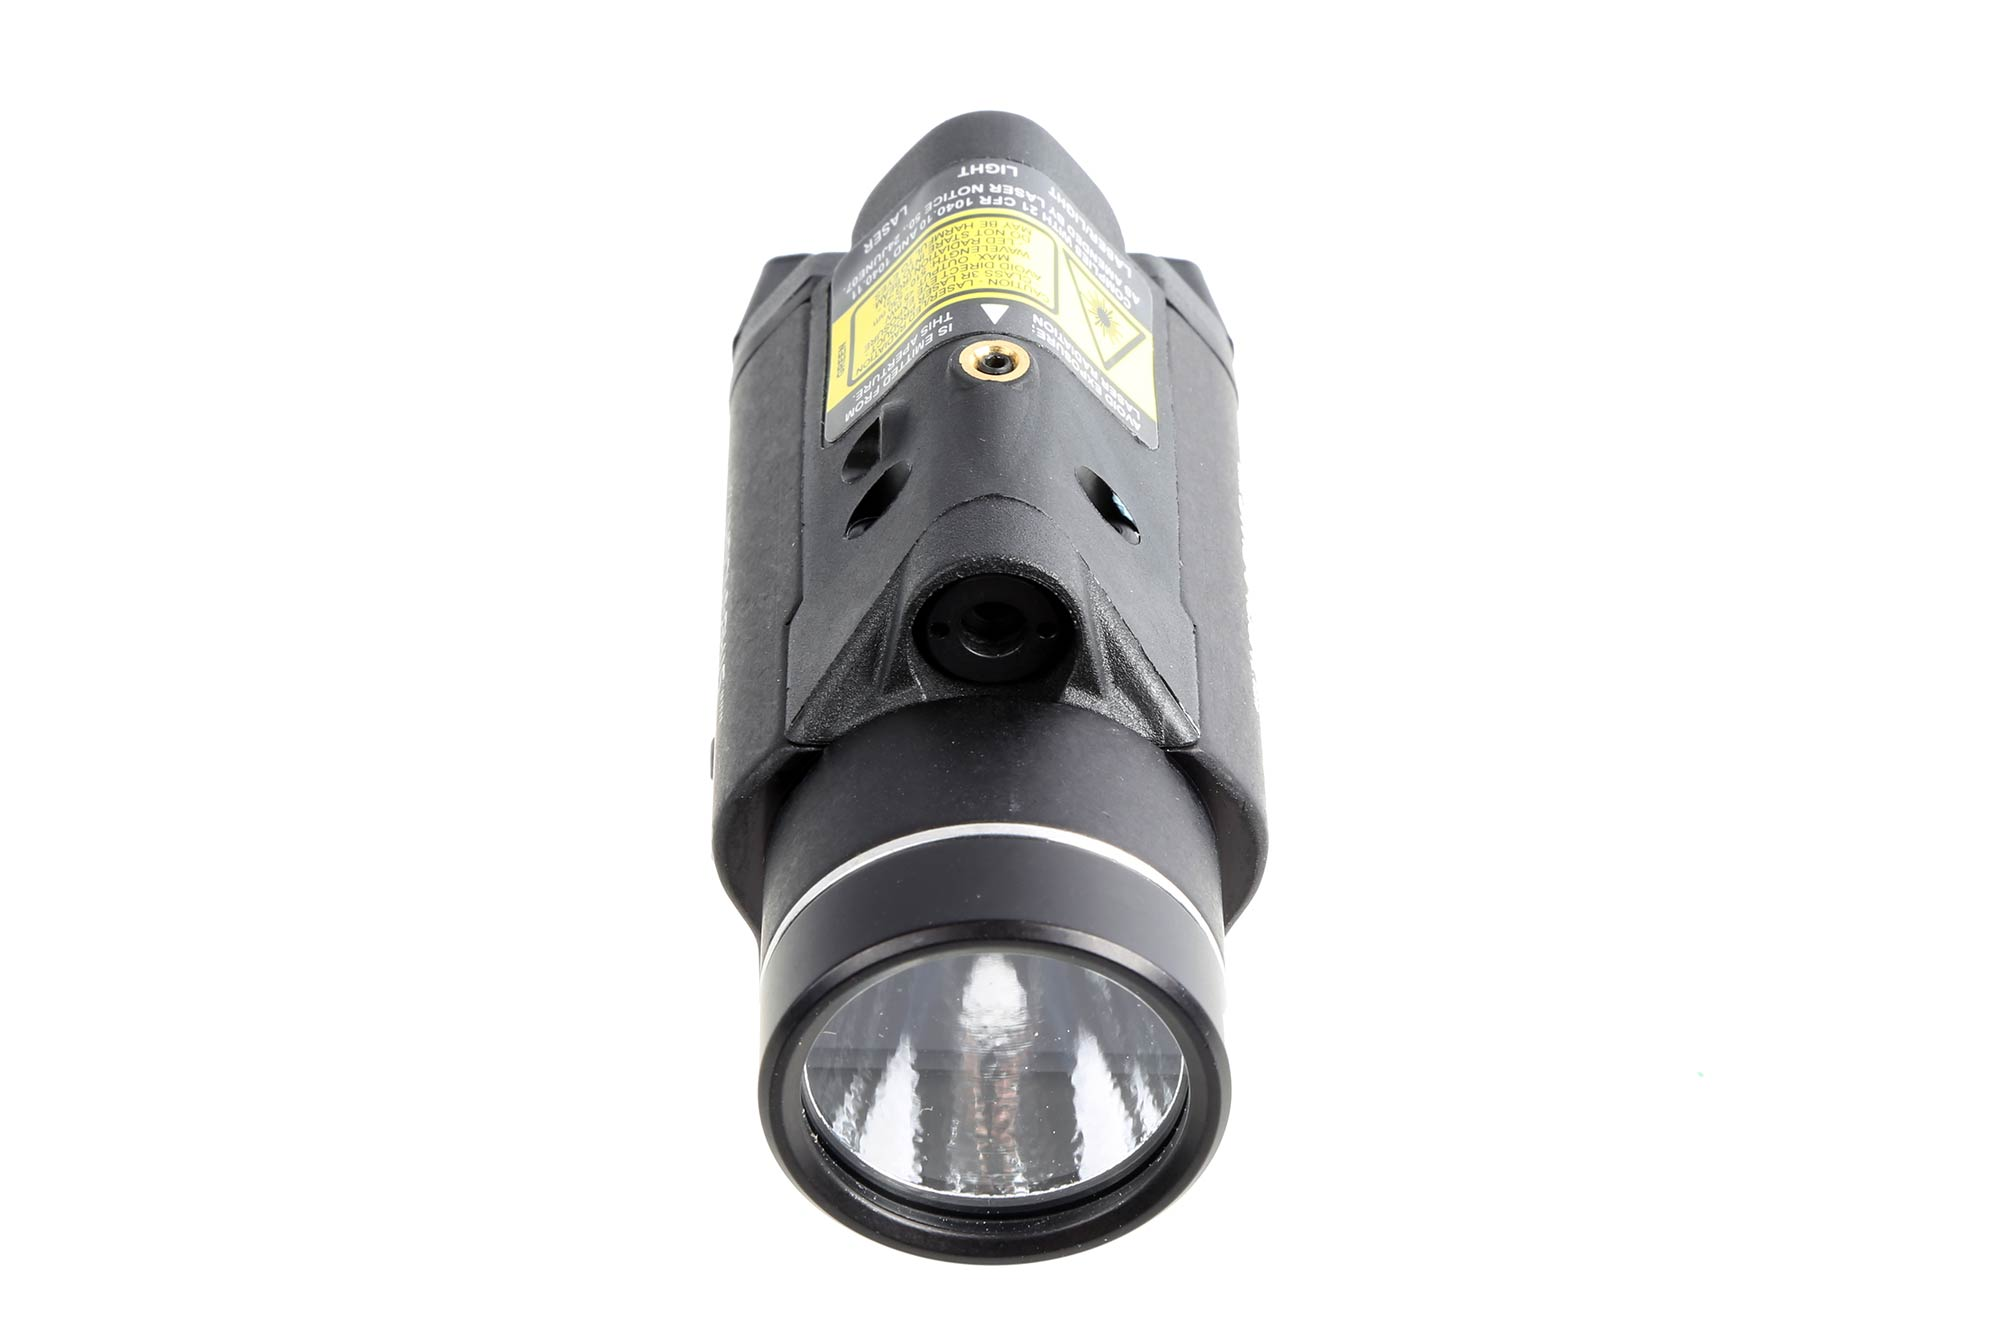 Streamlight Tlr 2 G 300 Lumen Weapon Light With Green